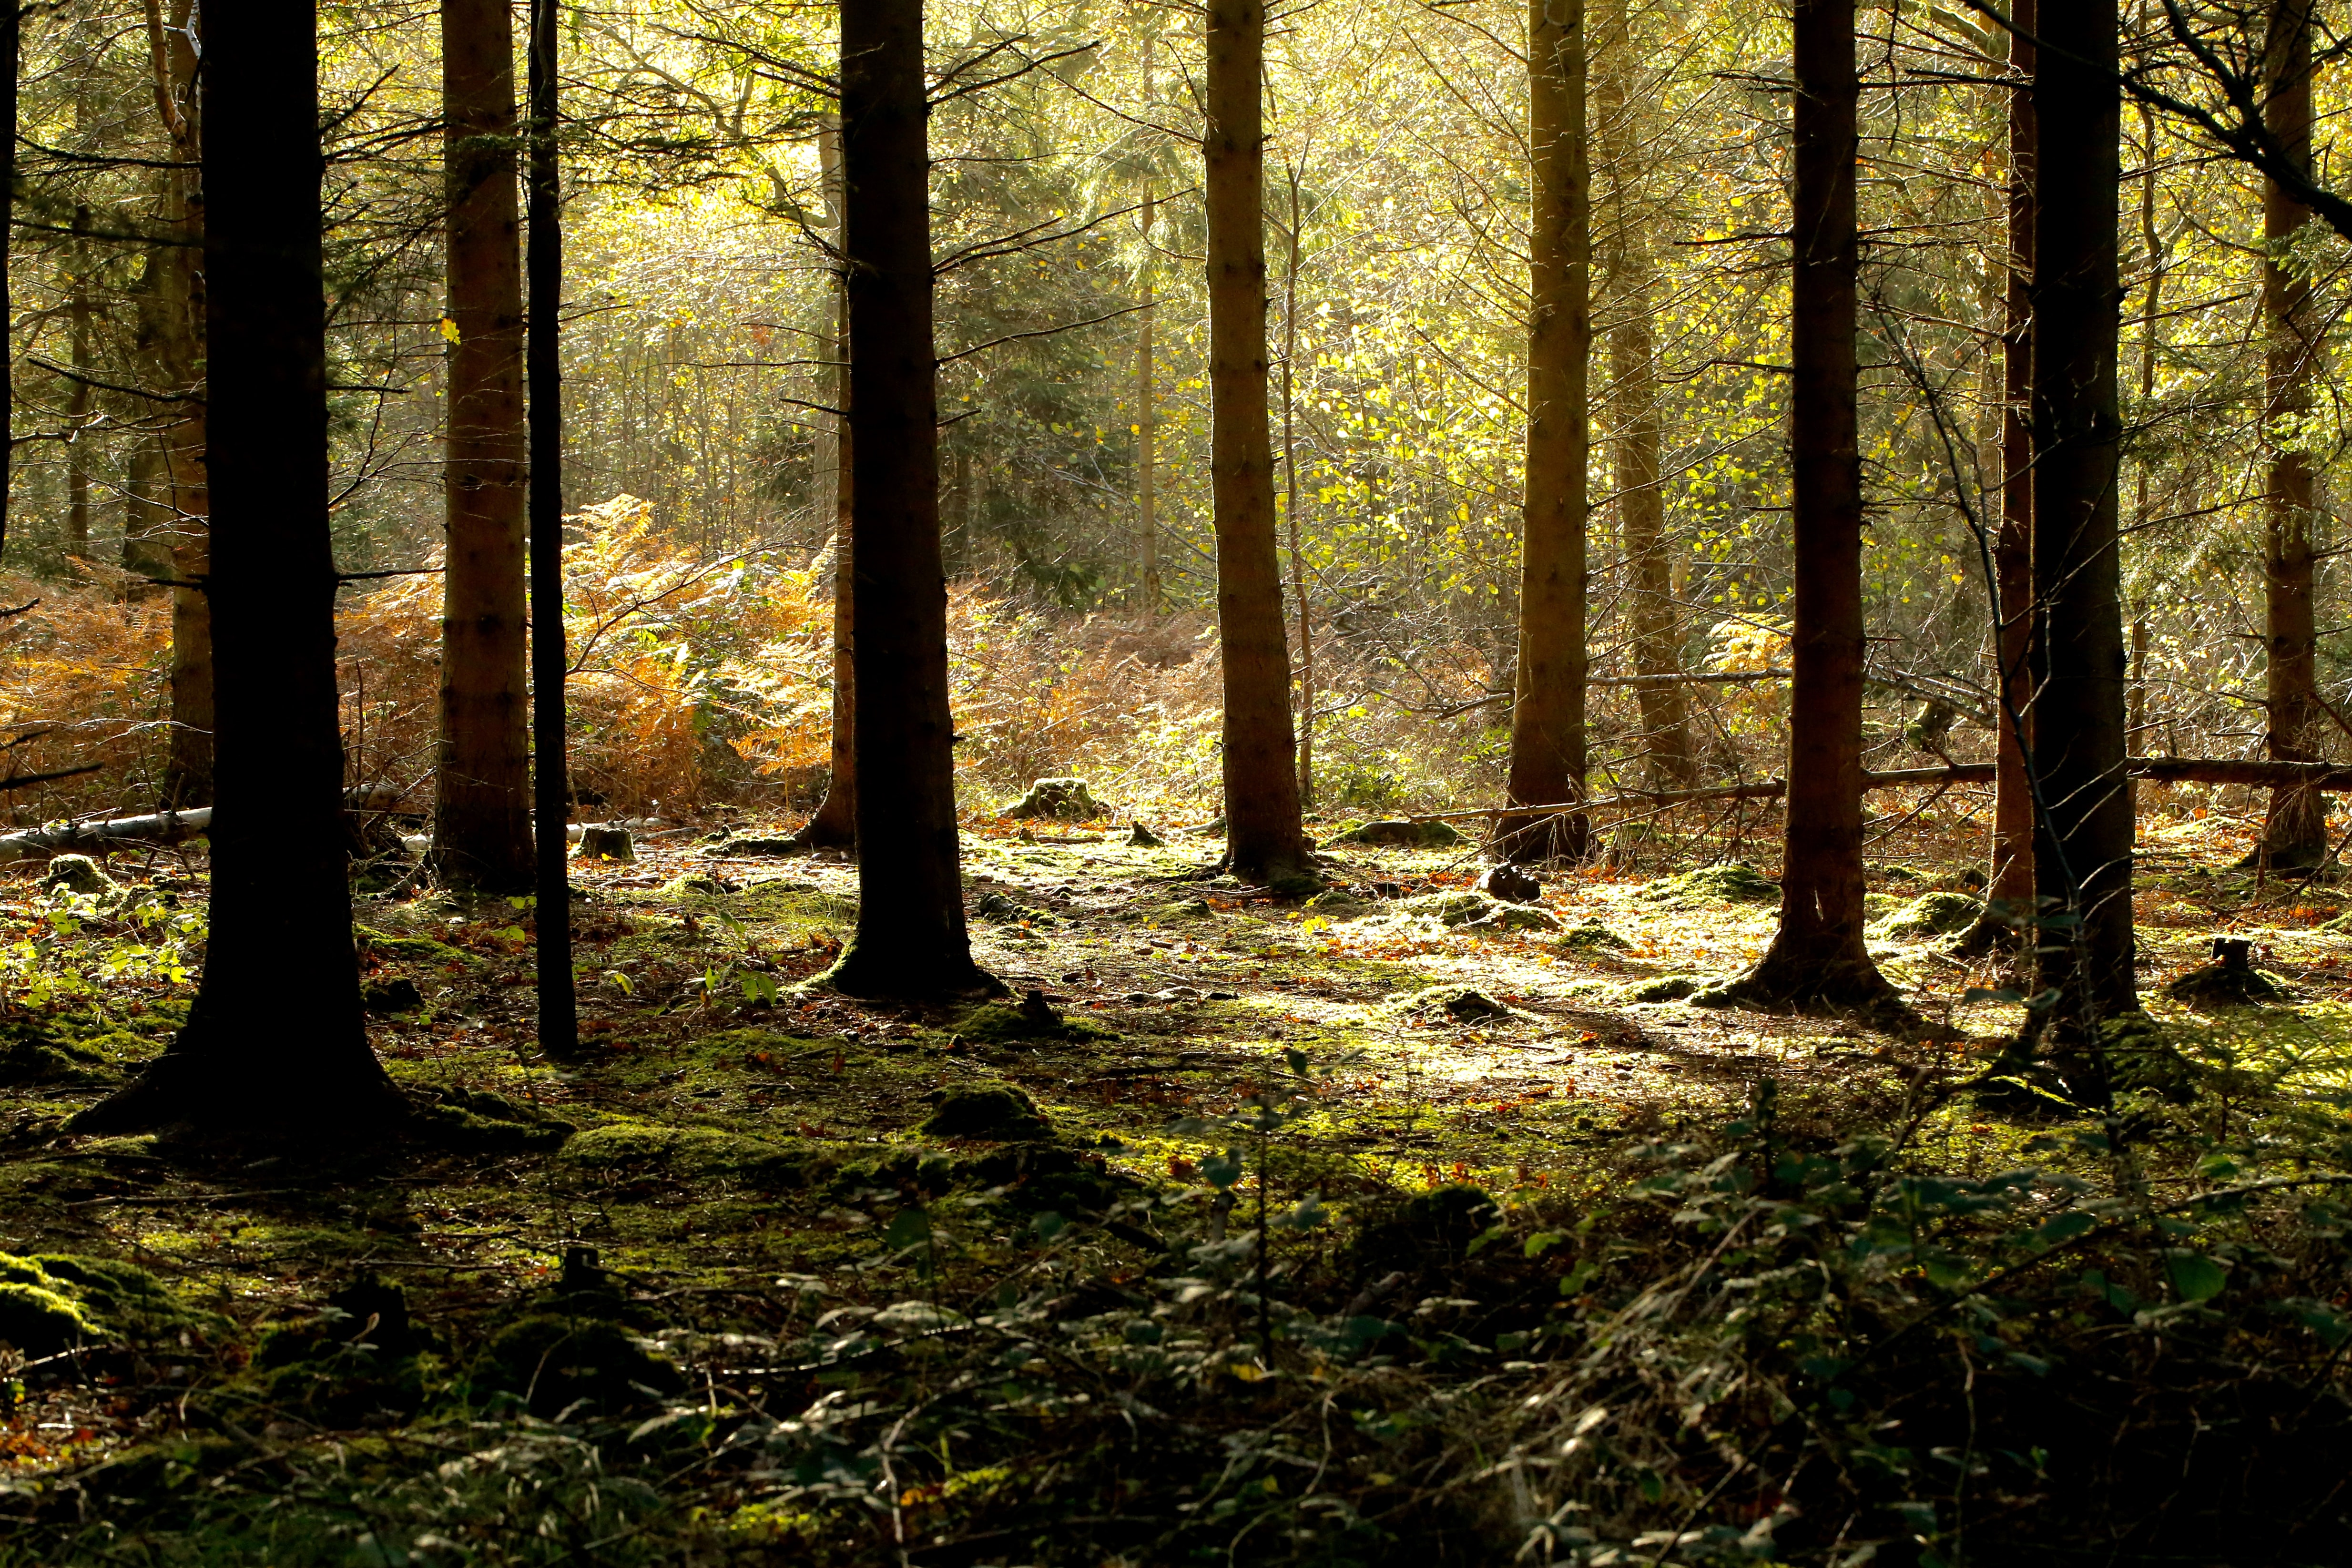 green and brown forest at daytime